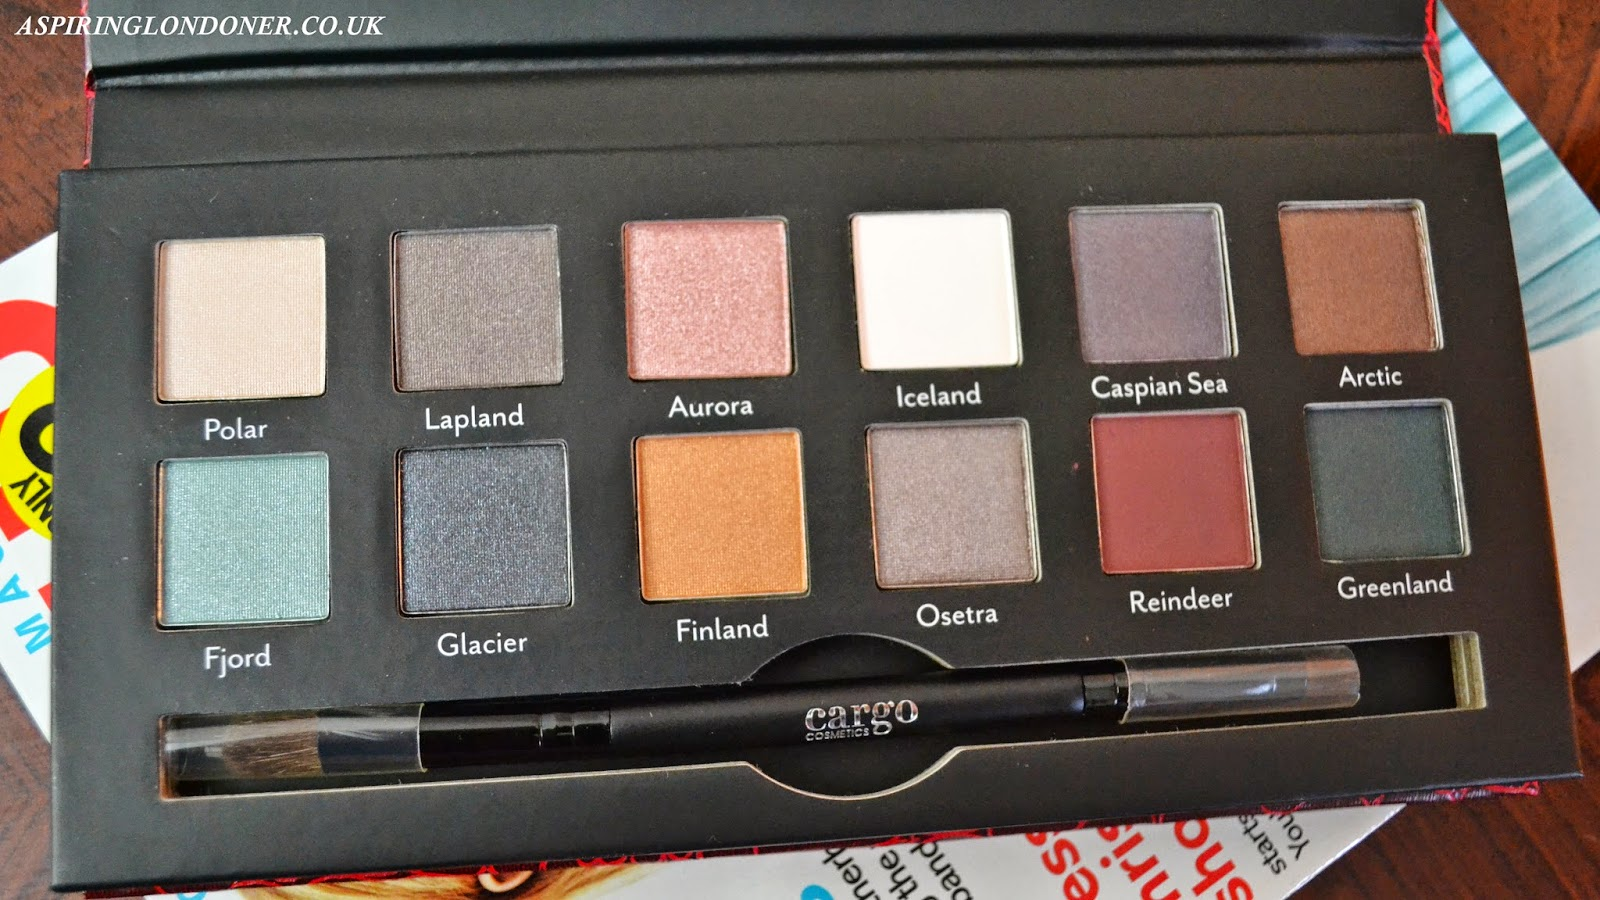 Cargo Cosmetics Northern Lights Eyeshadow Palette Review - Aspiring Londoner